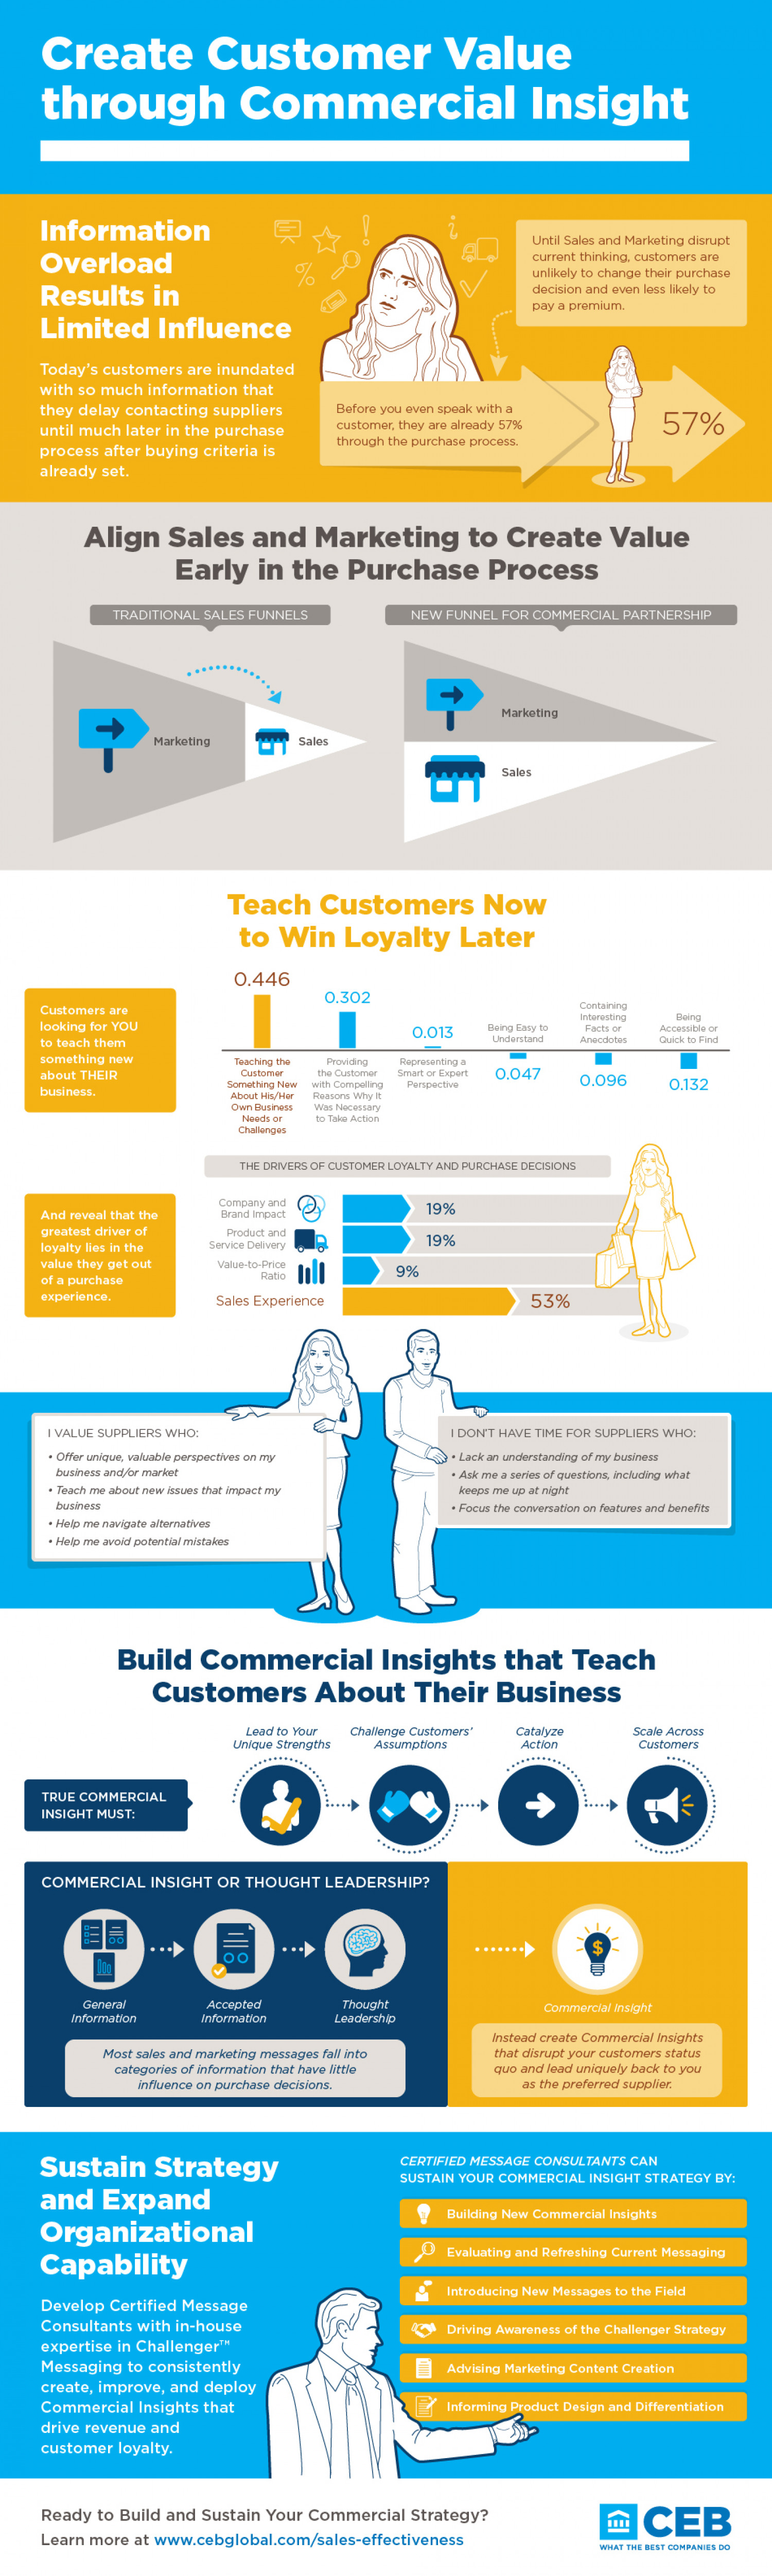 Create Customer Value through Commercial Insight Infographic